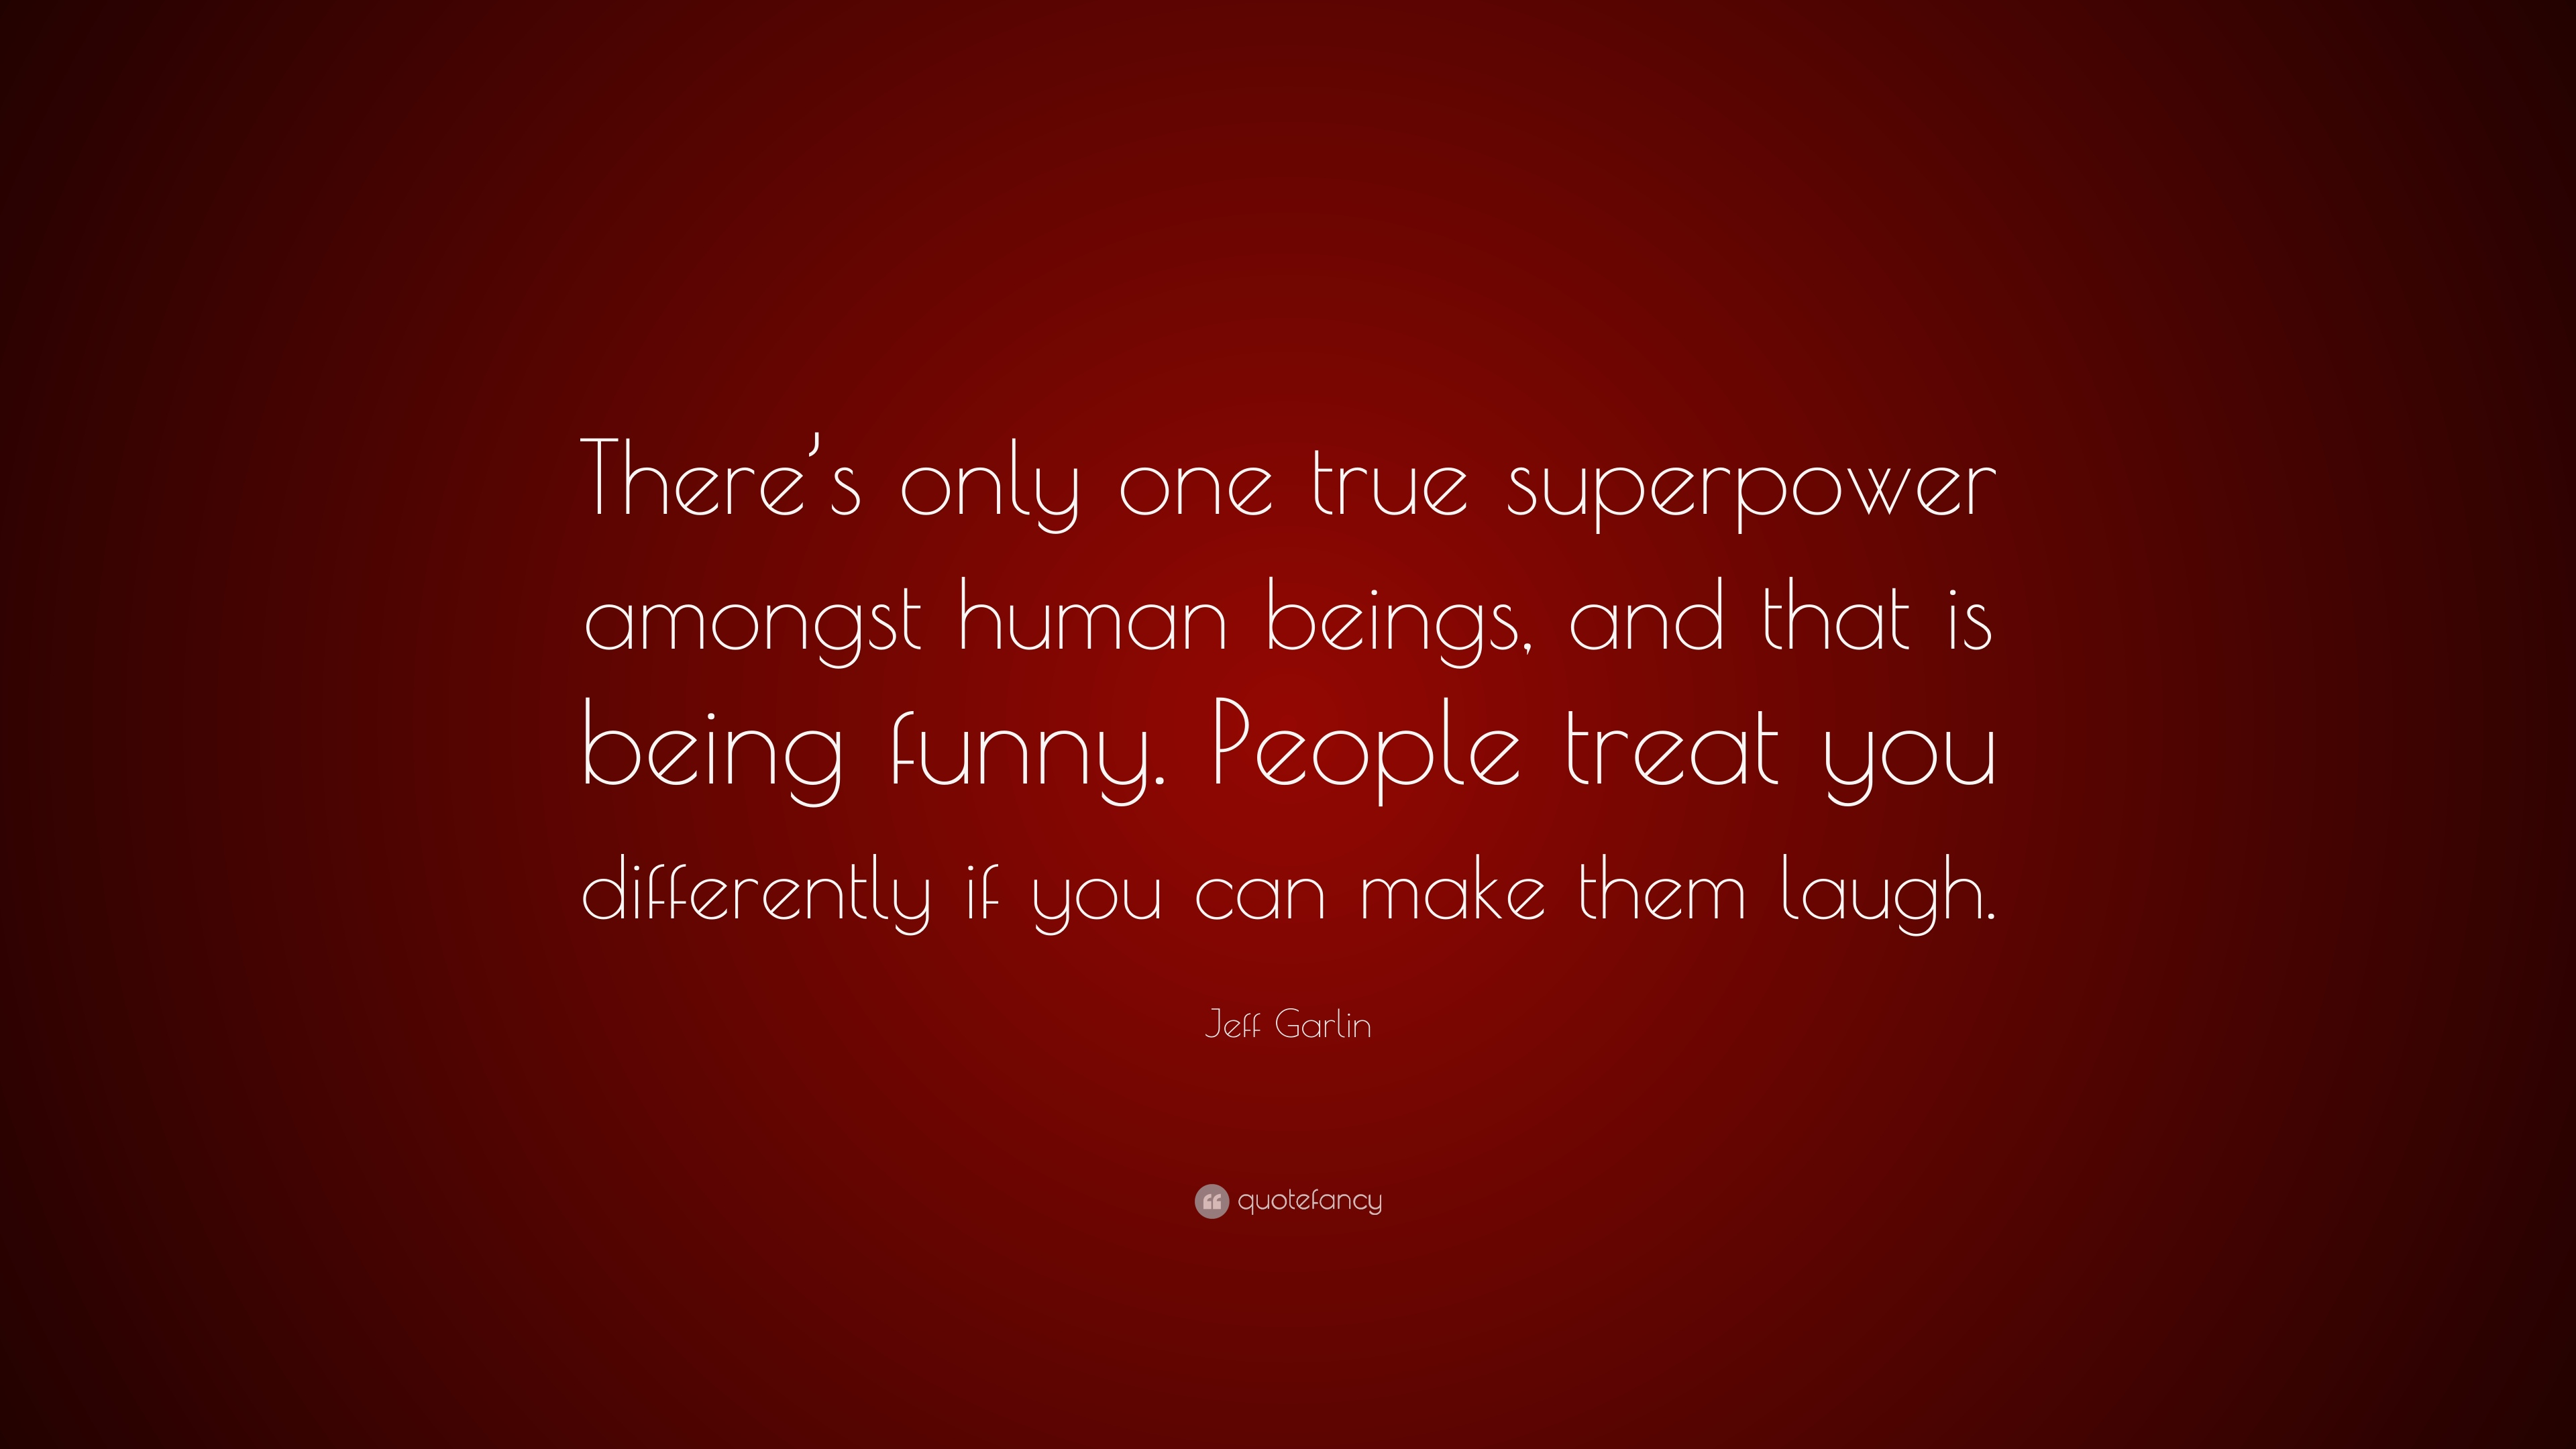 Jeff Garlin Quote Theres Only One True Superpower Amongst Human